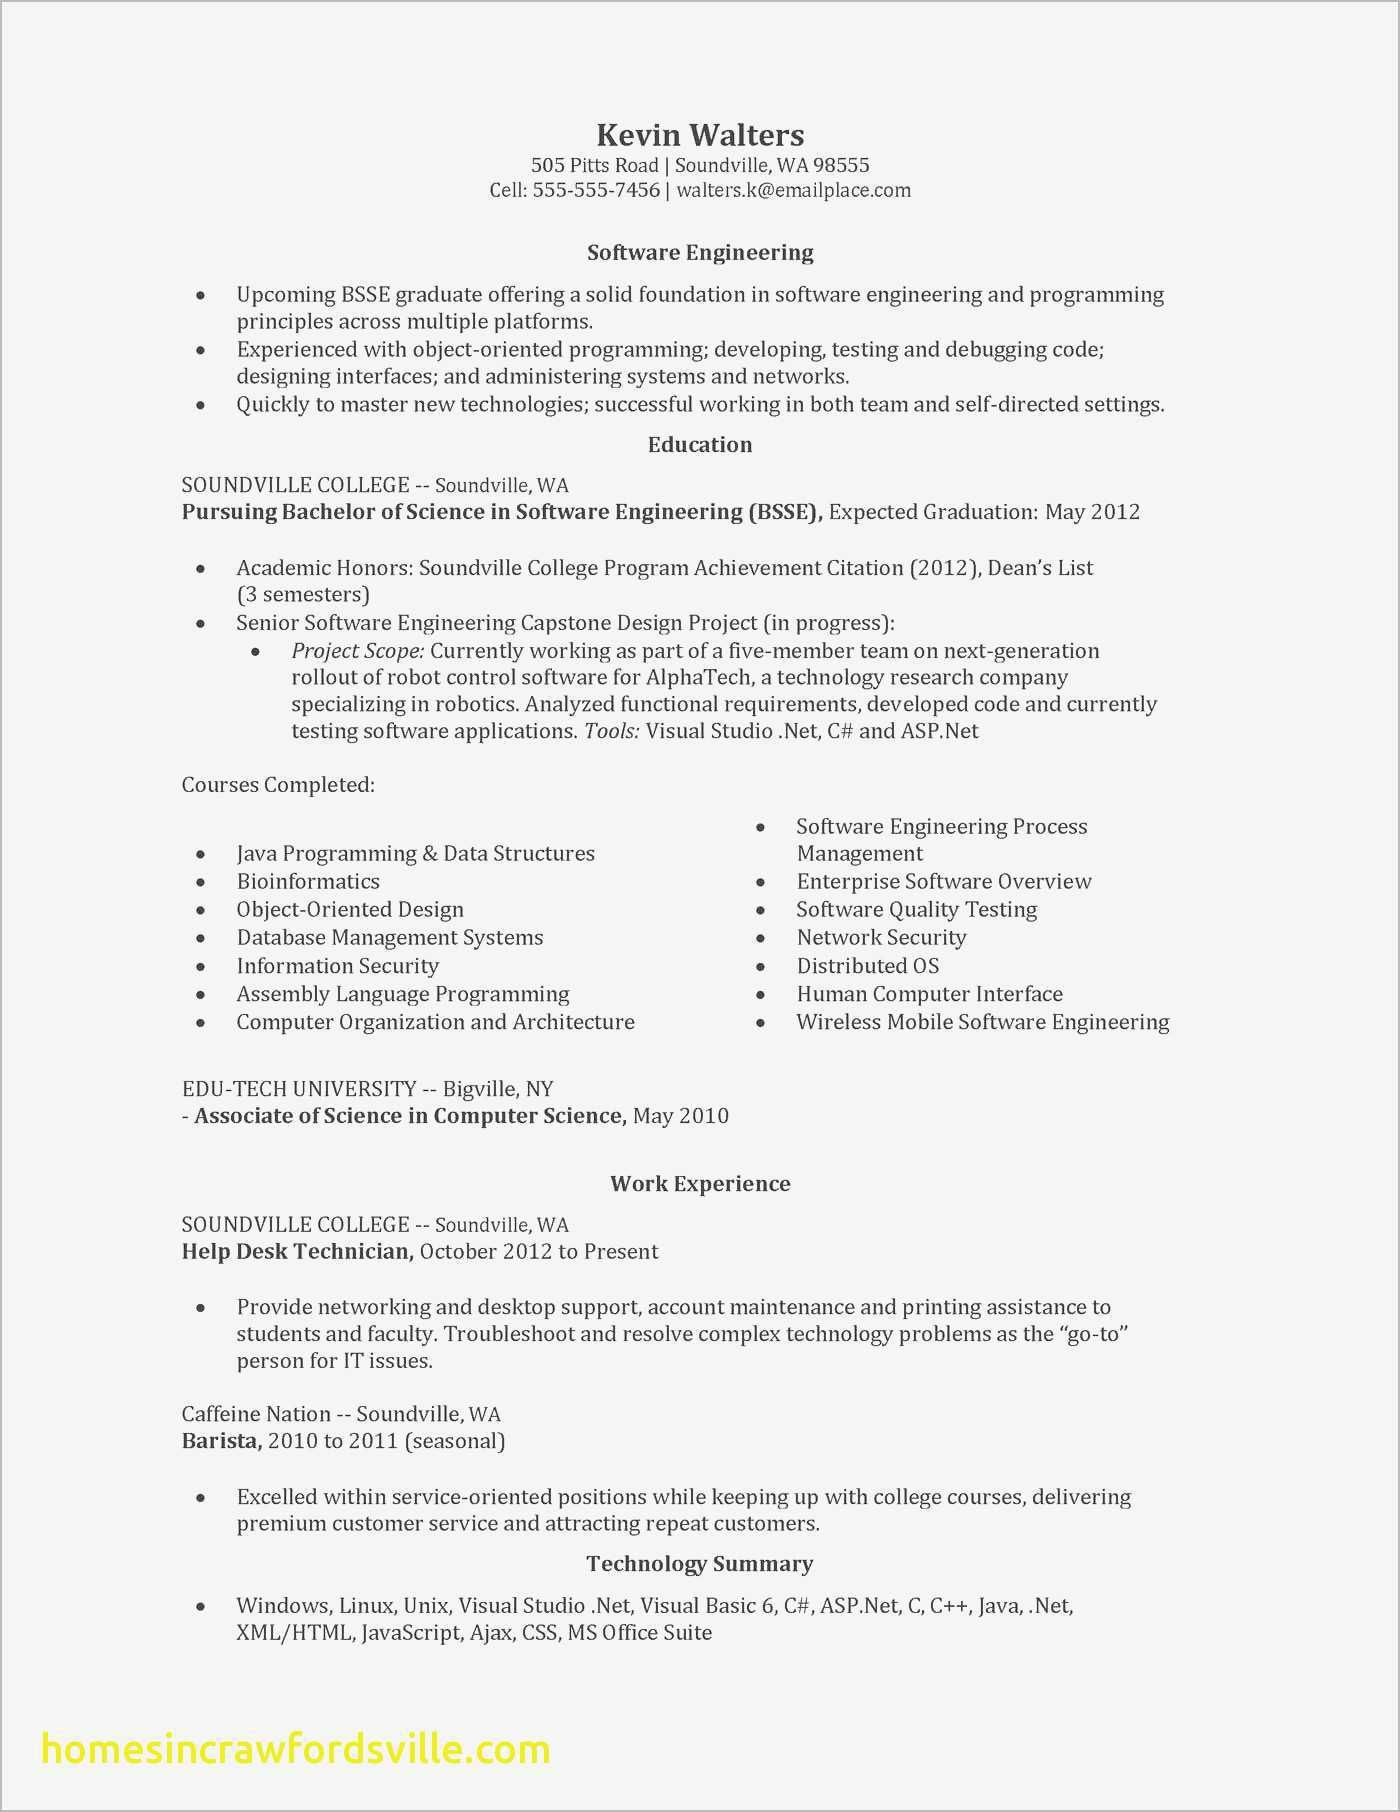 Web Testing Resume Pinmas Sant On Resume Template  Pinterest  Web Developer .